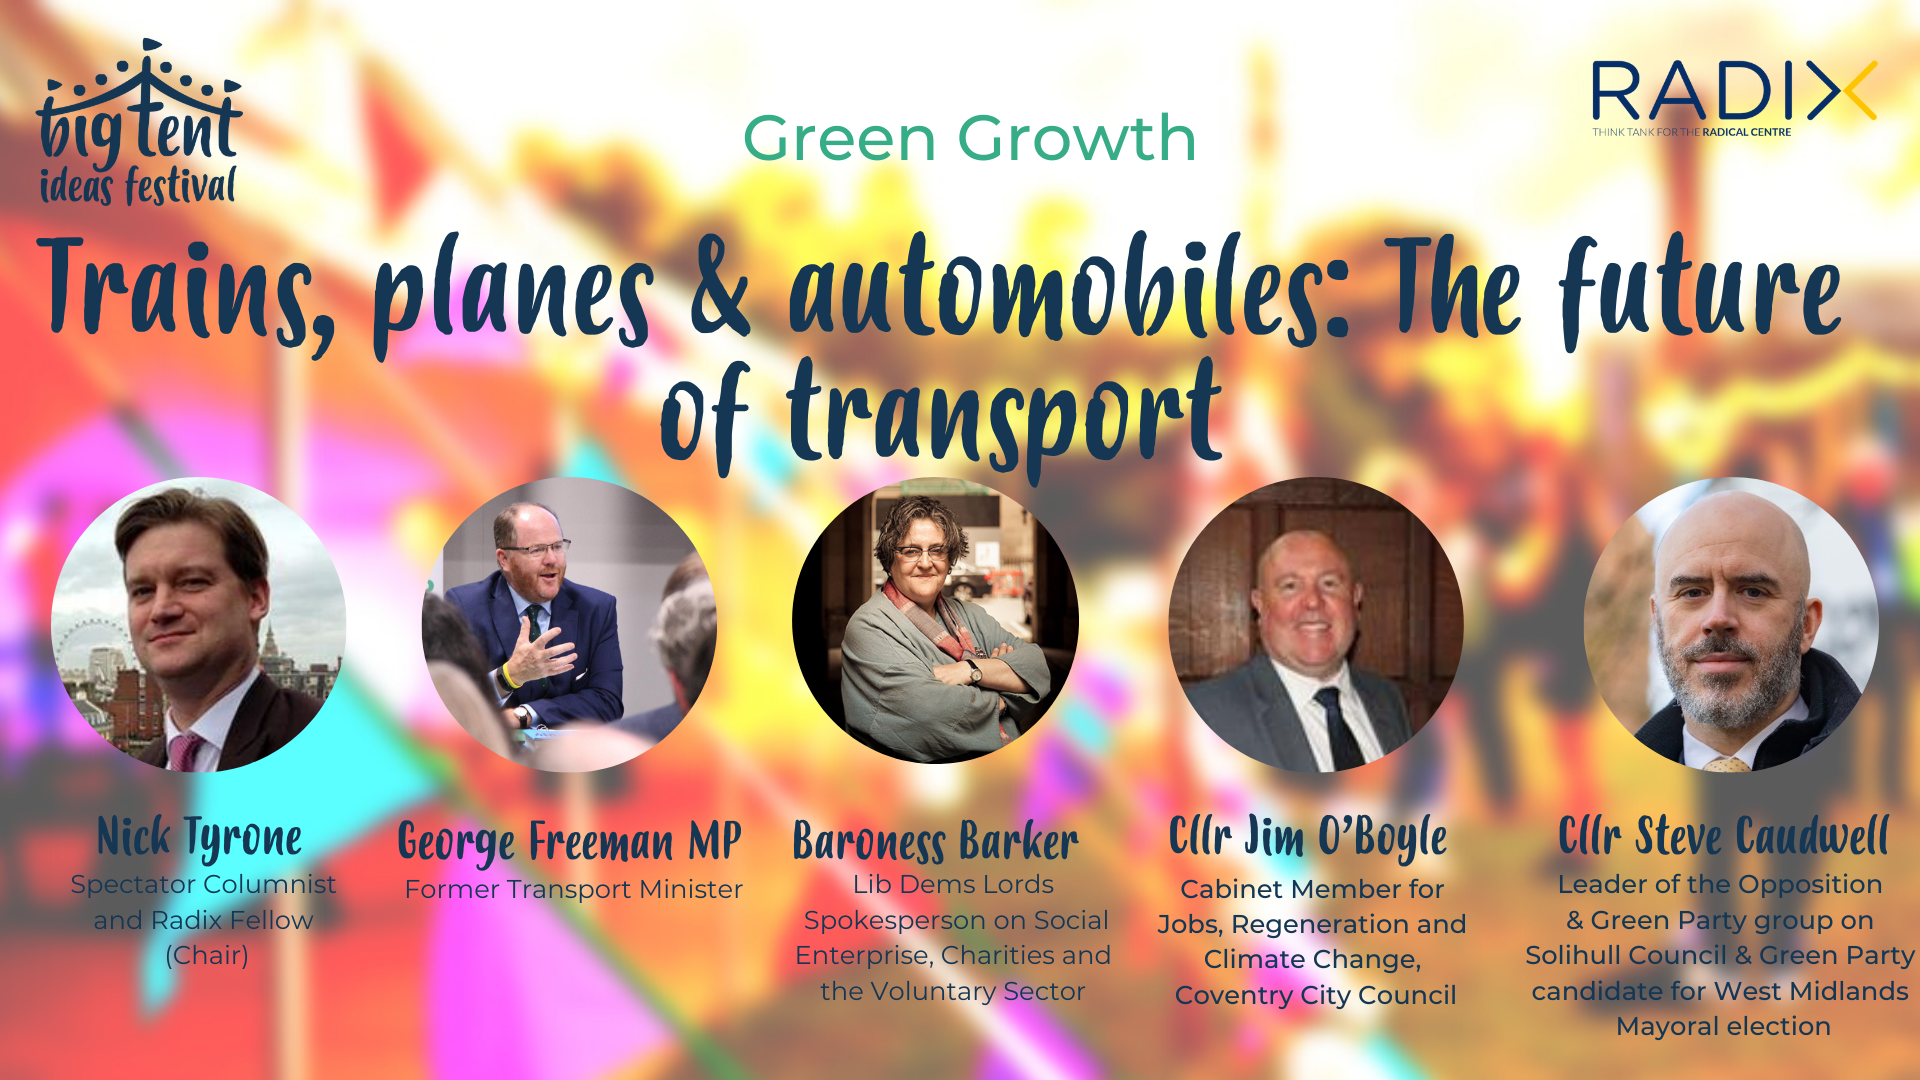 Trains, planes & automobiles: The future of transport